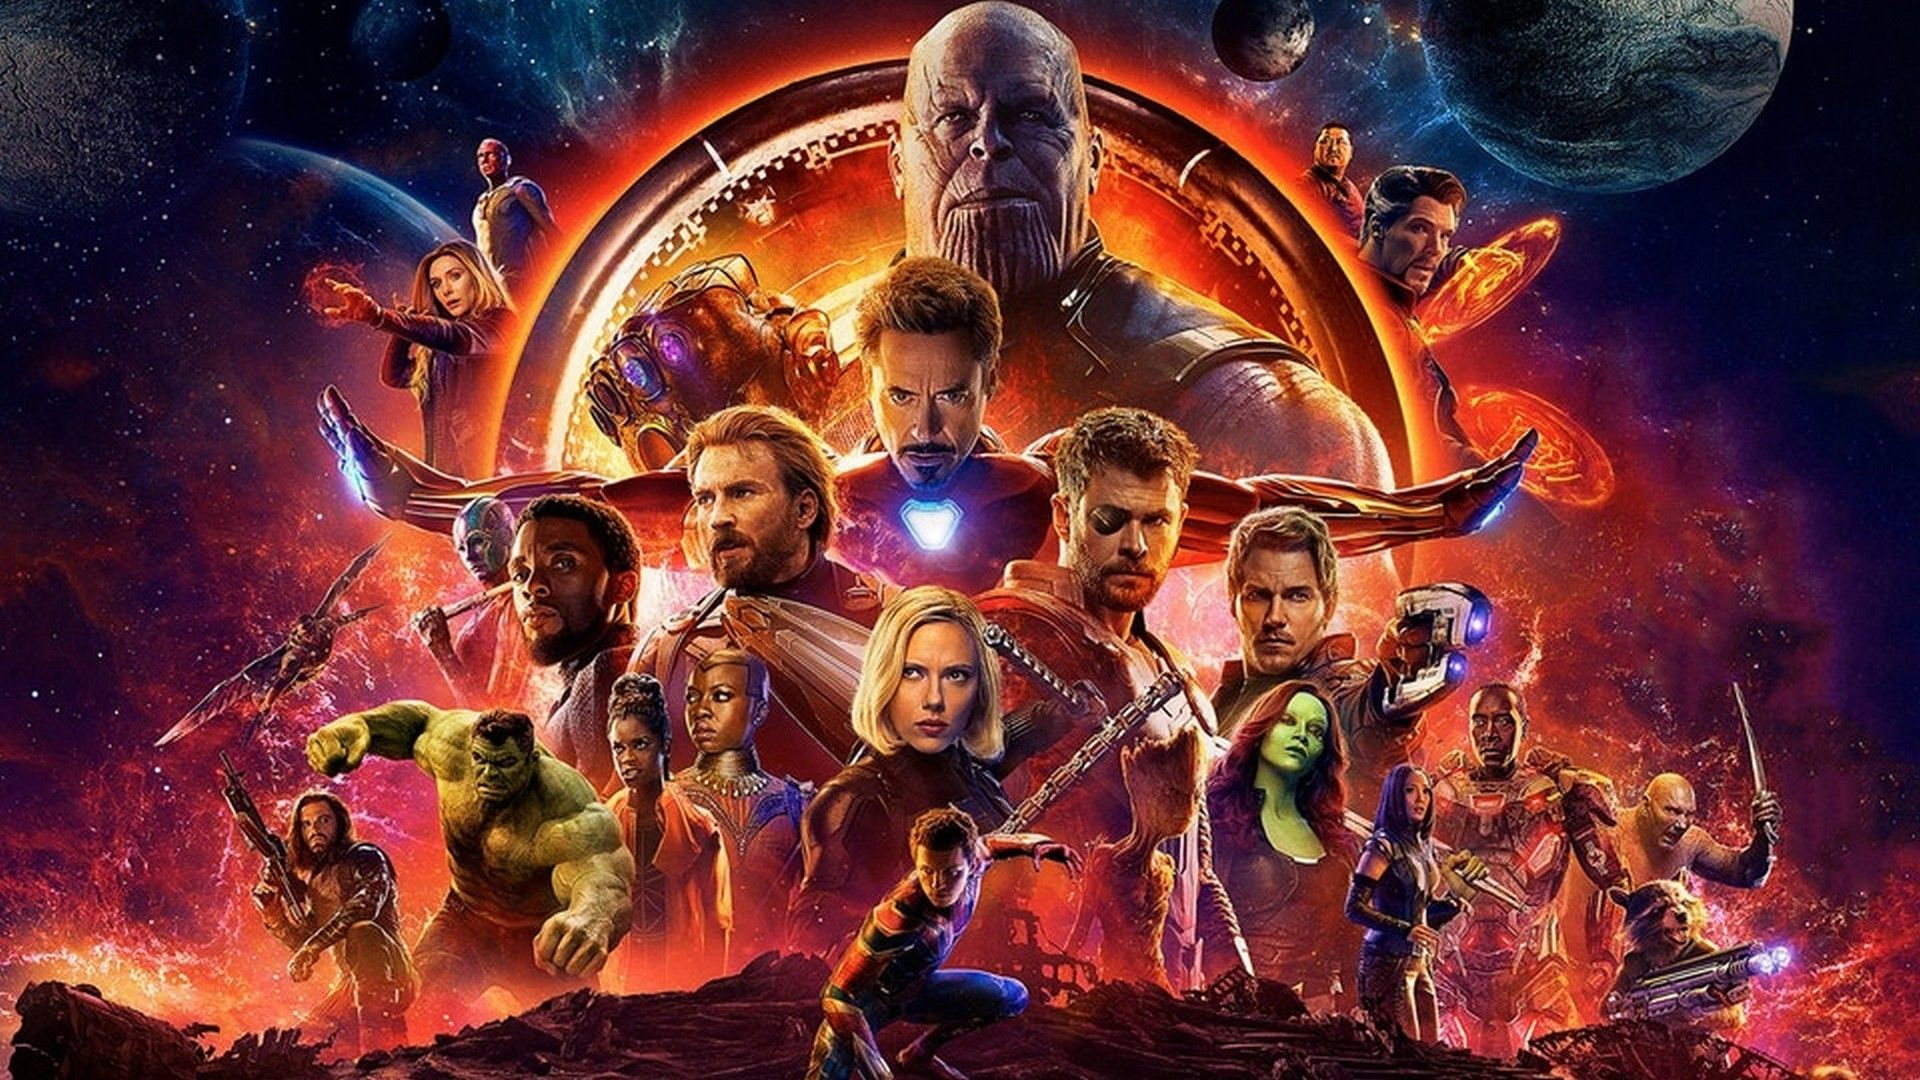 Wallpaper Hd Avengers Infinity War 2021 Live Wallpaper Hd Marvel Movies In Order Marvel Cinematic Universe Movies Avengers Movies